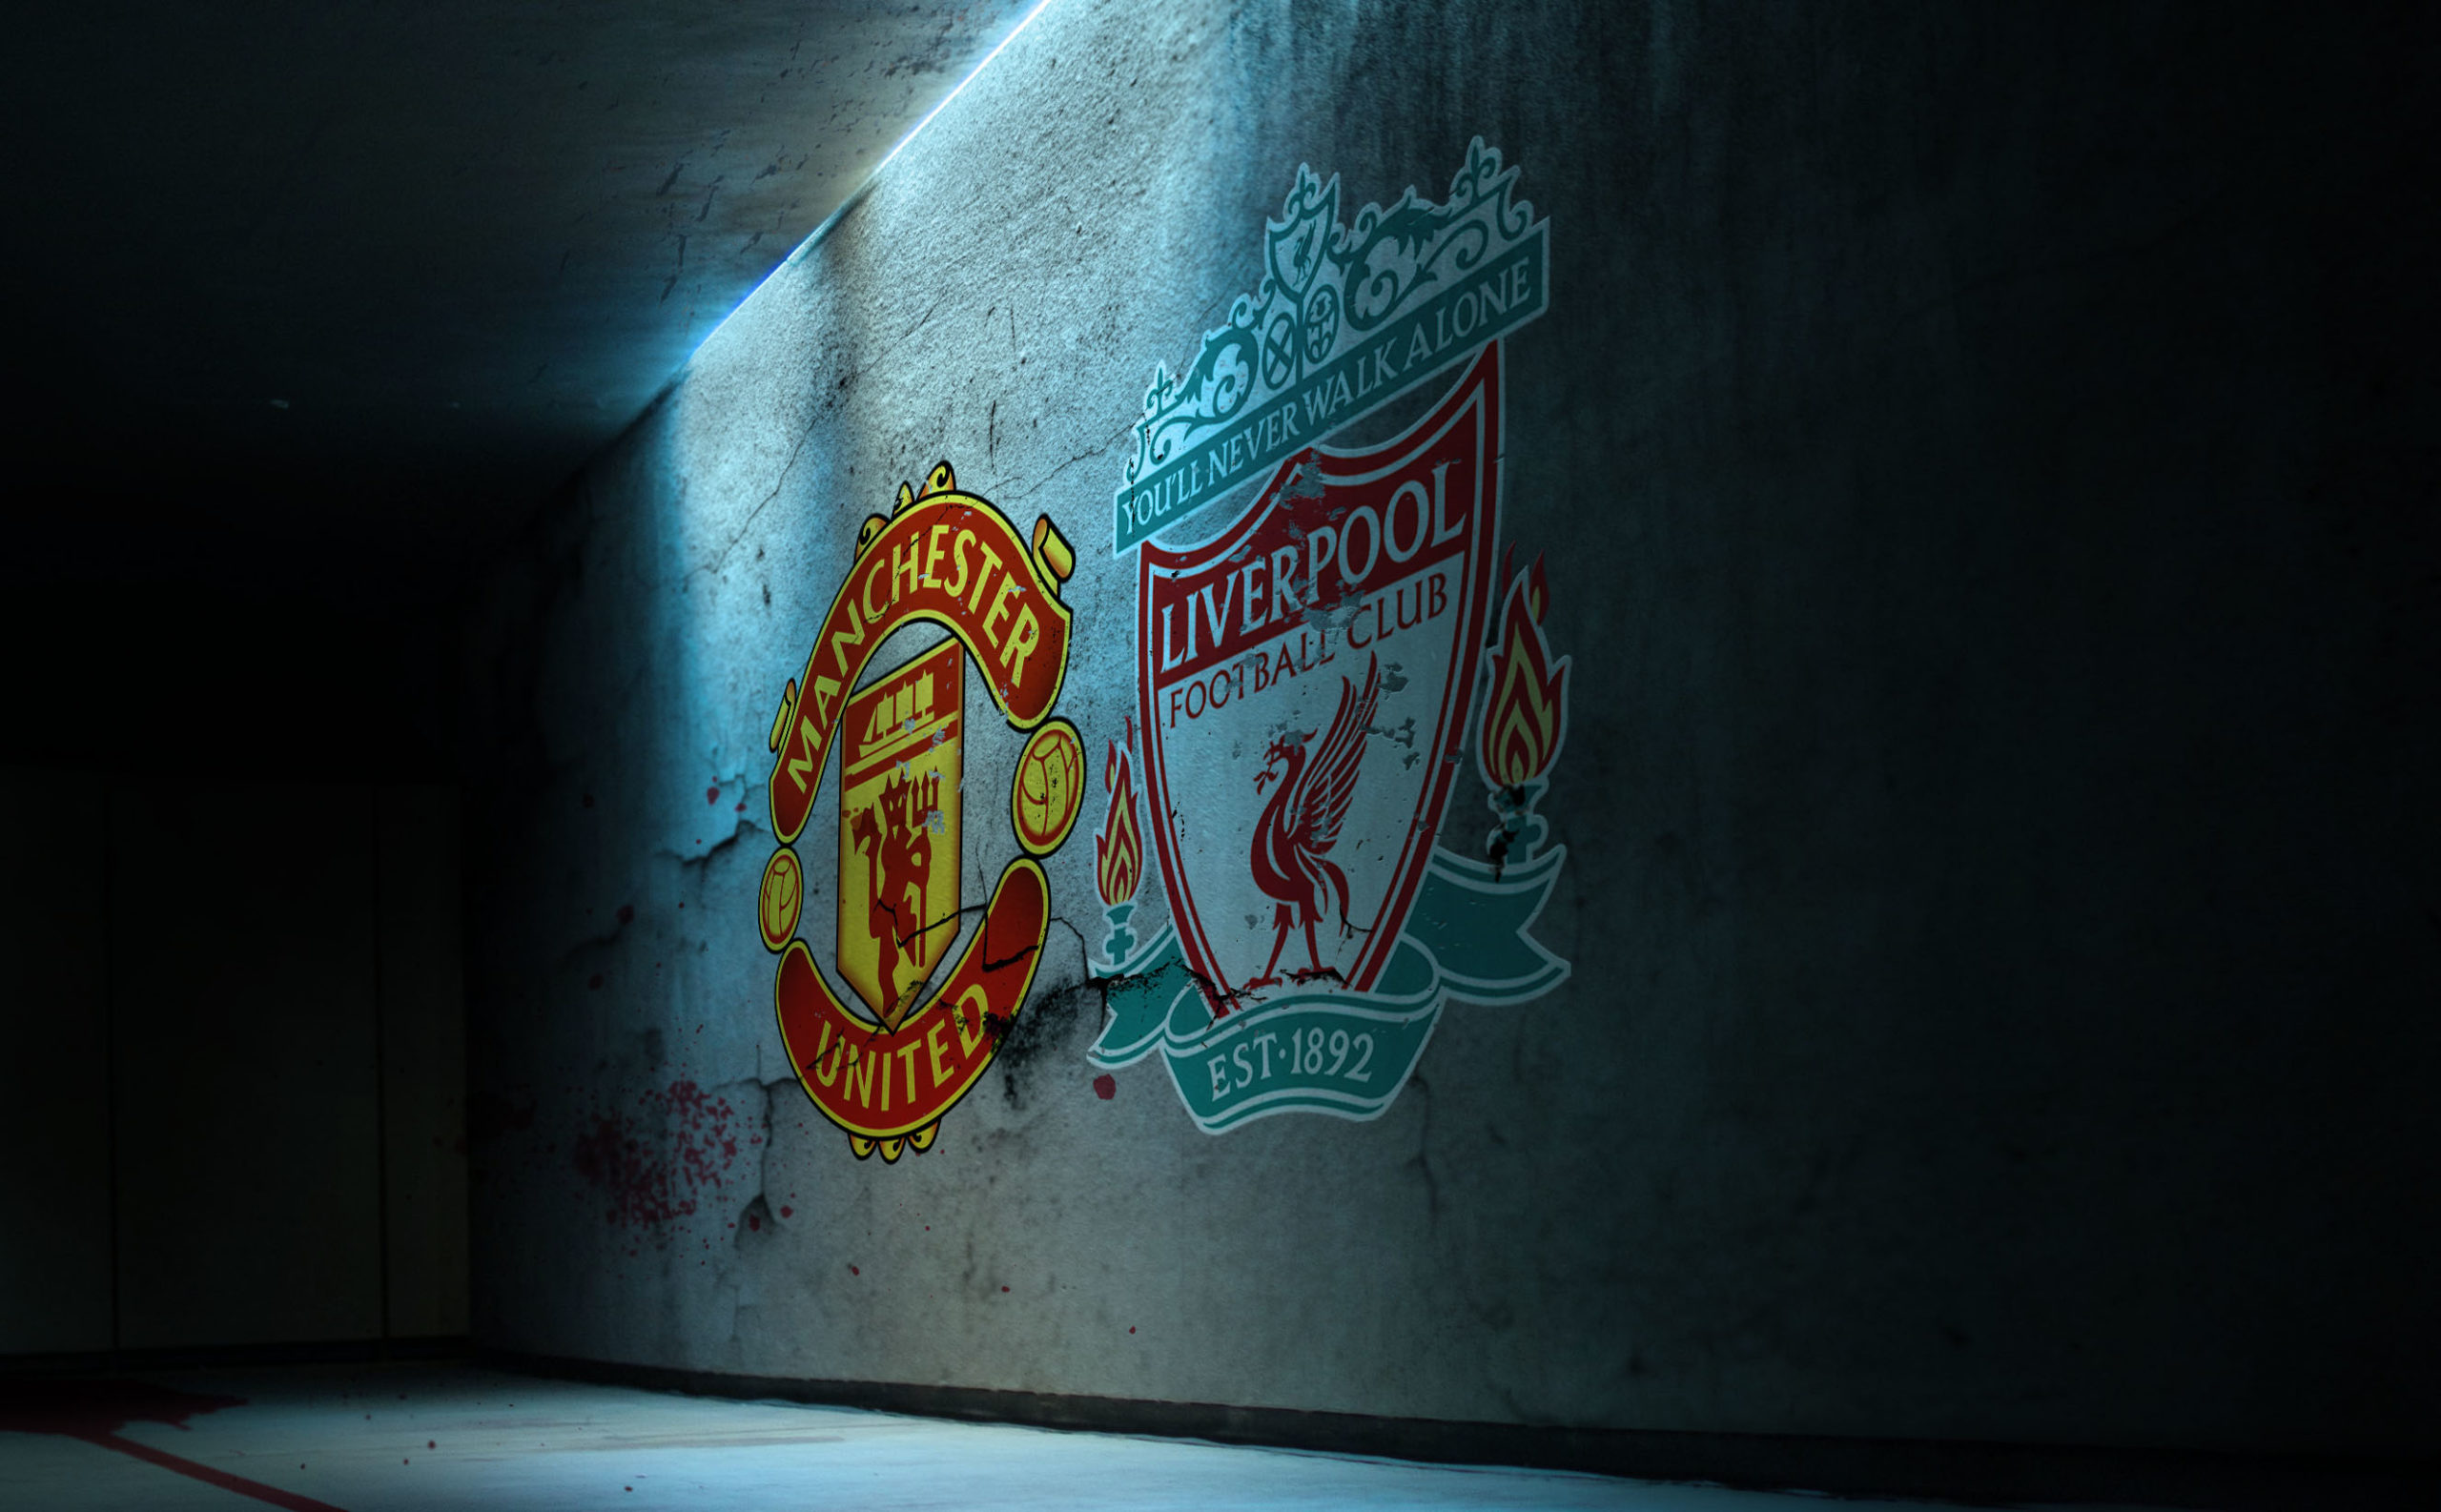 Rywalizacja Liverpool – Manchester United